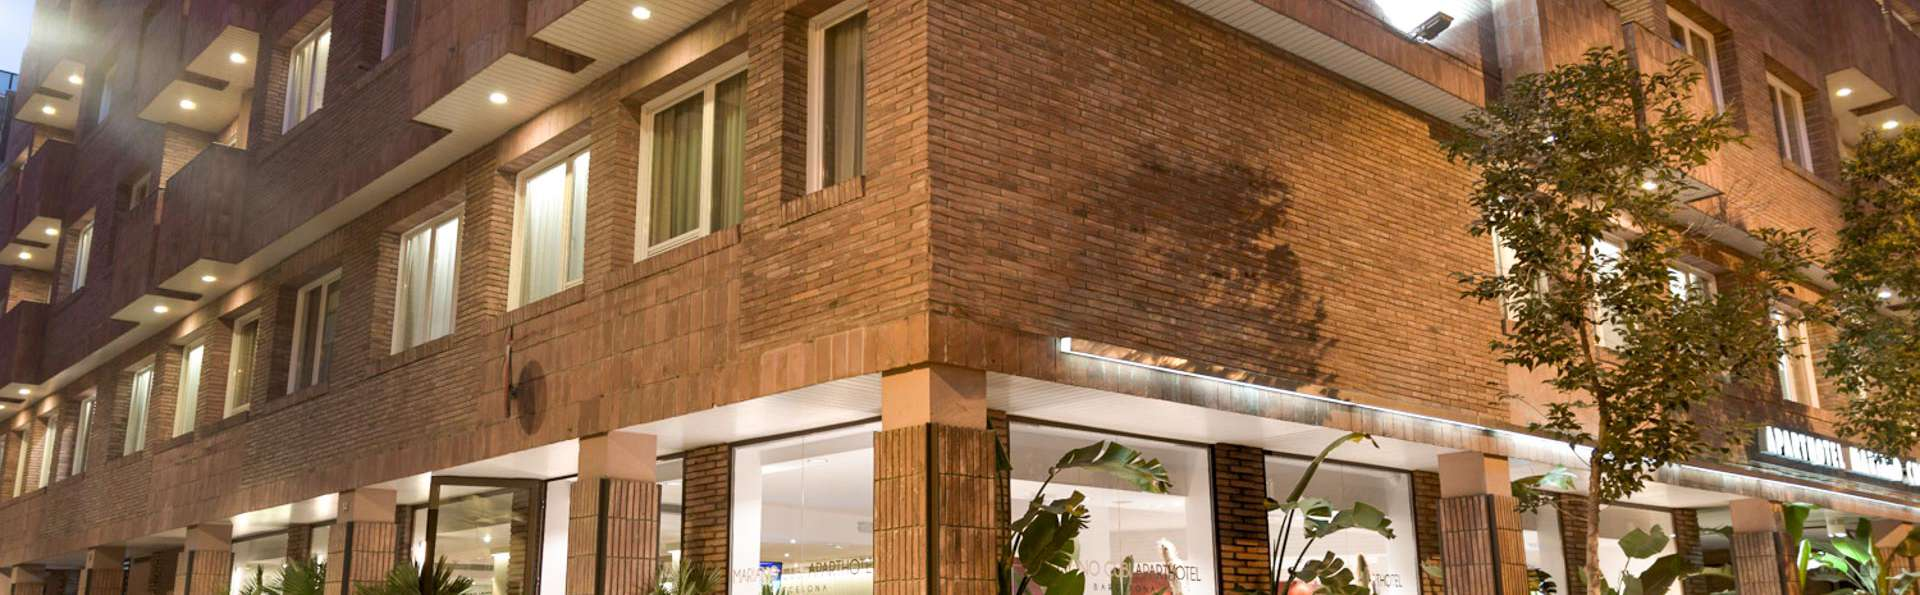 Aparthotel Mariano Cubi Barcelona - EDIT_NEW_FRONT_02.jpg